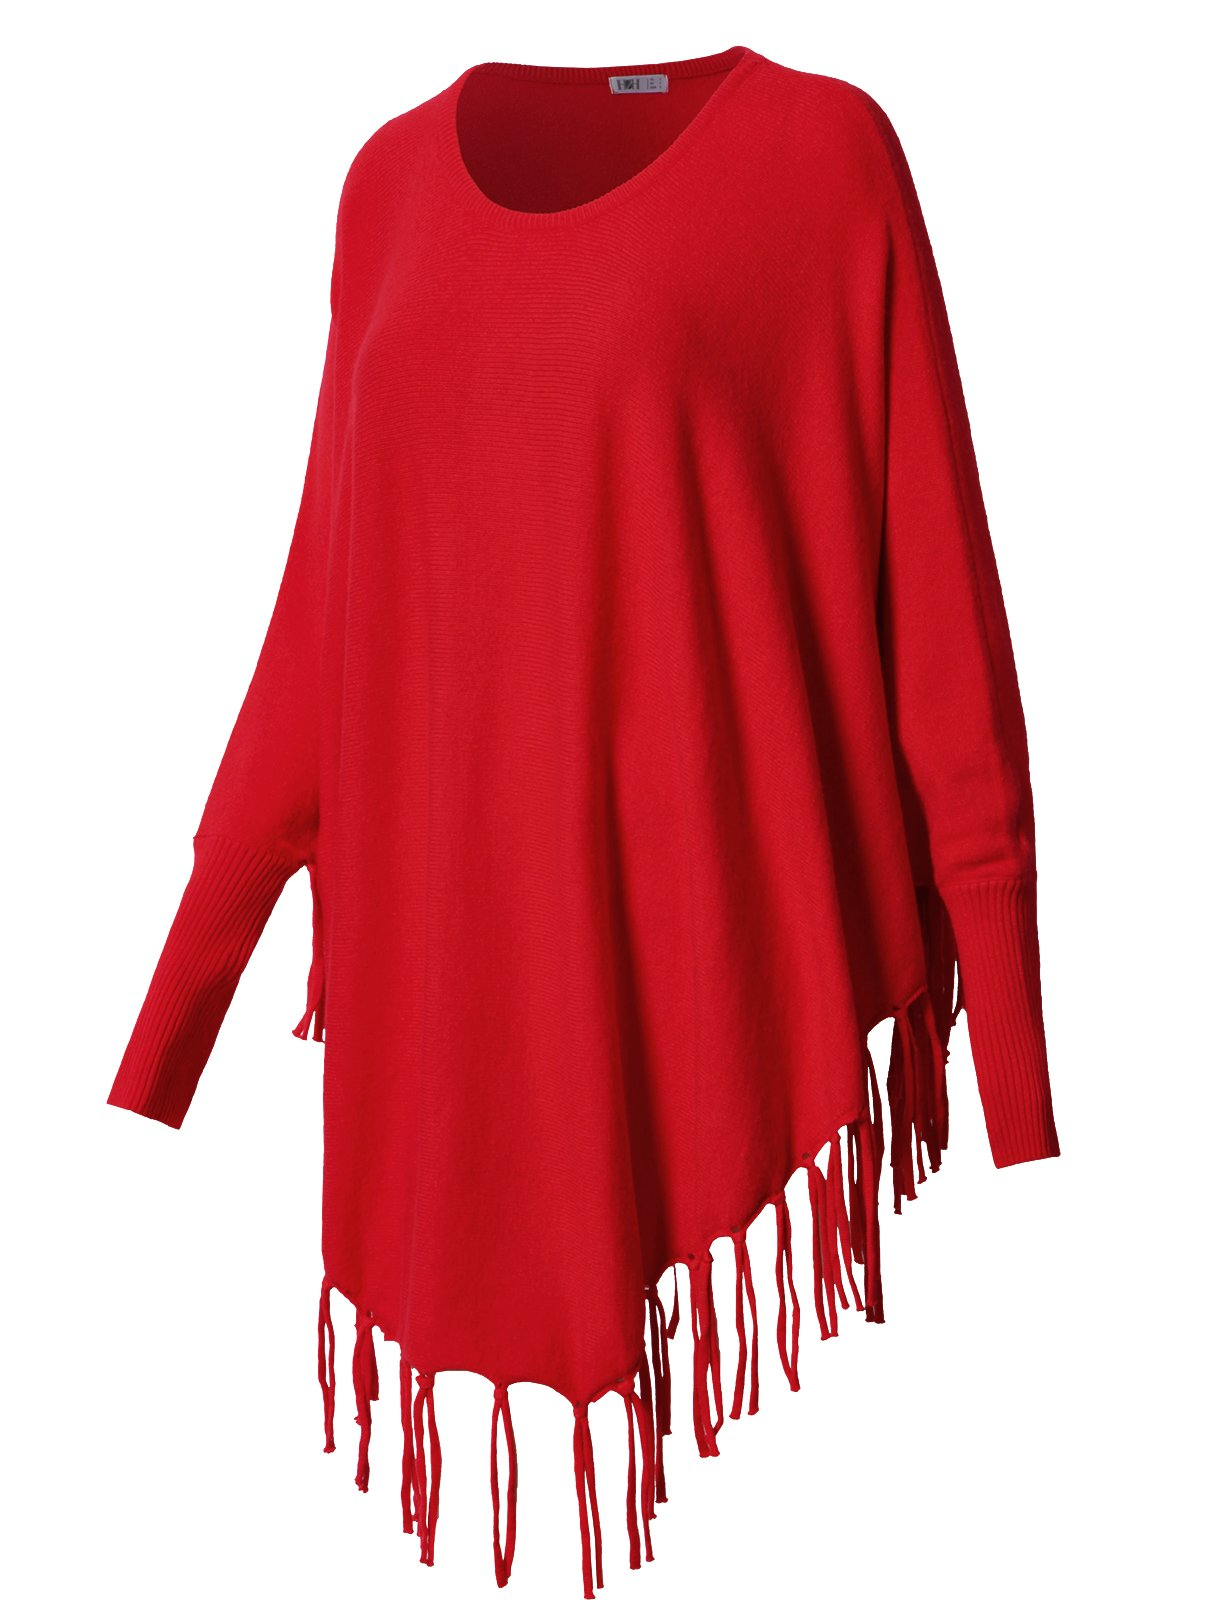 H2H Womens Comfy Scoop Neck Long Sleeve Knit Fringe Poncho Sweater Top RED US M/Asia M (CWOSWL048)